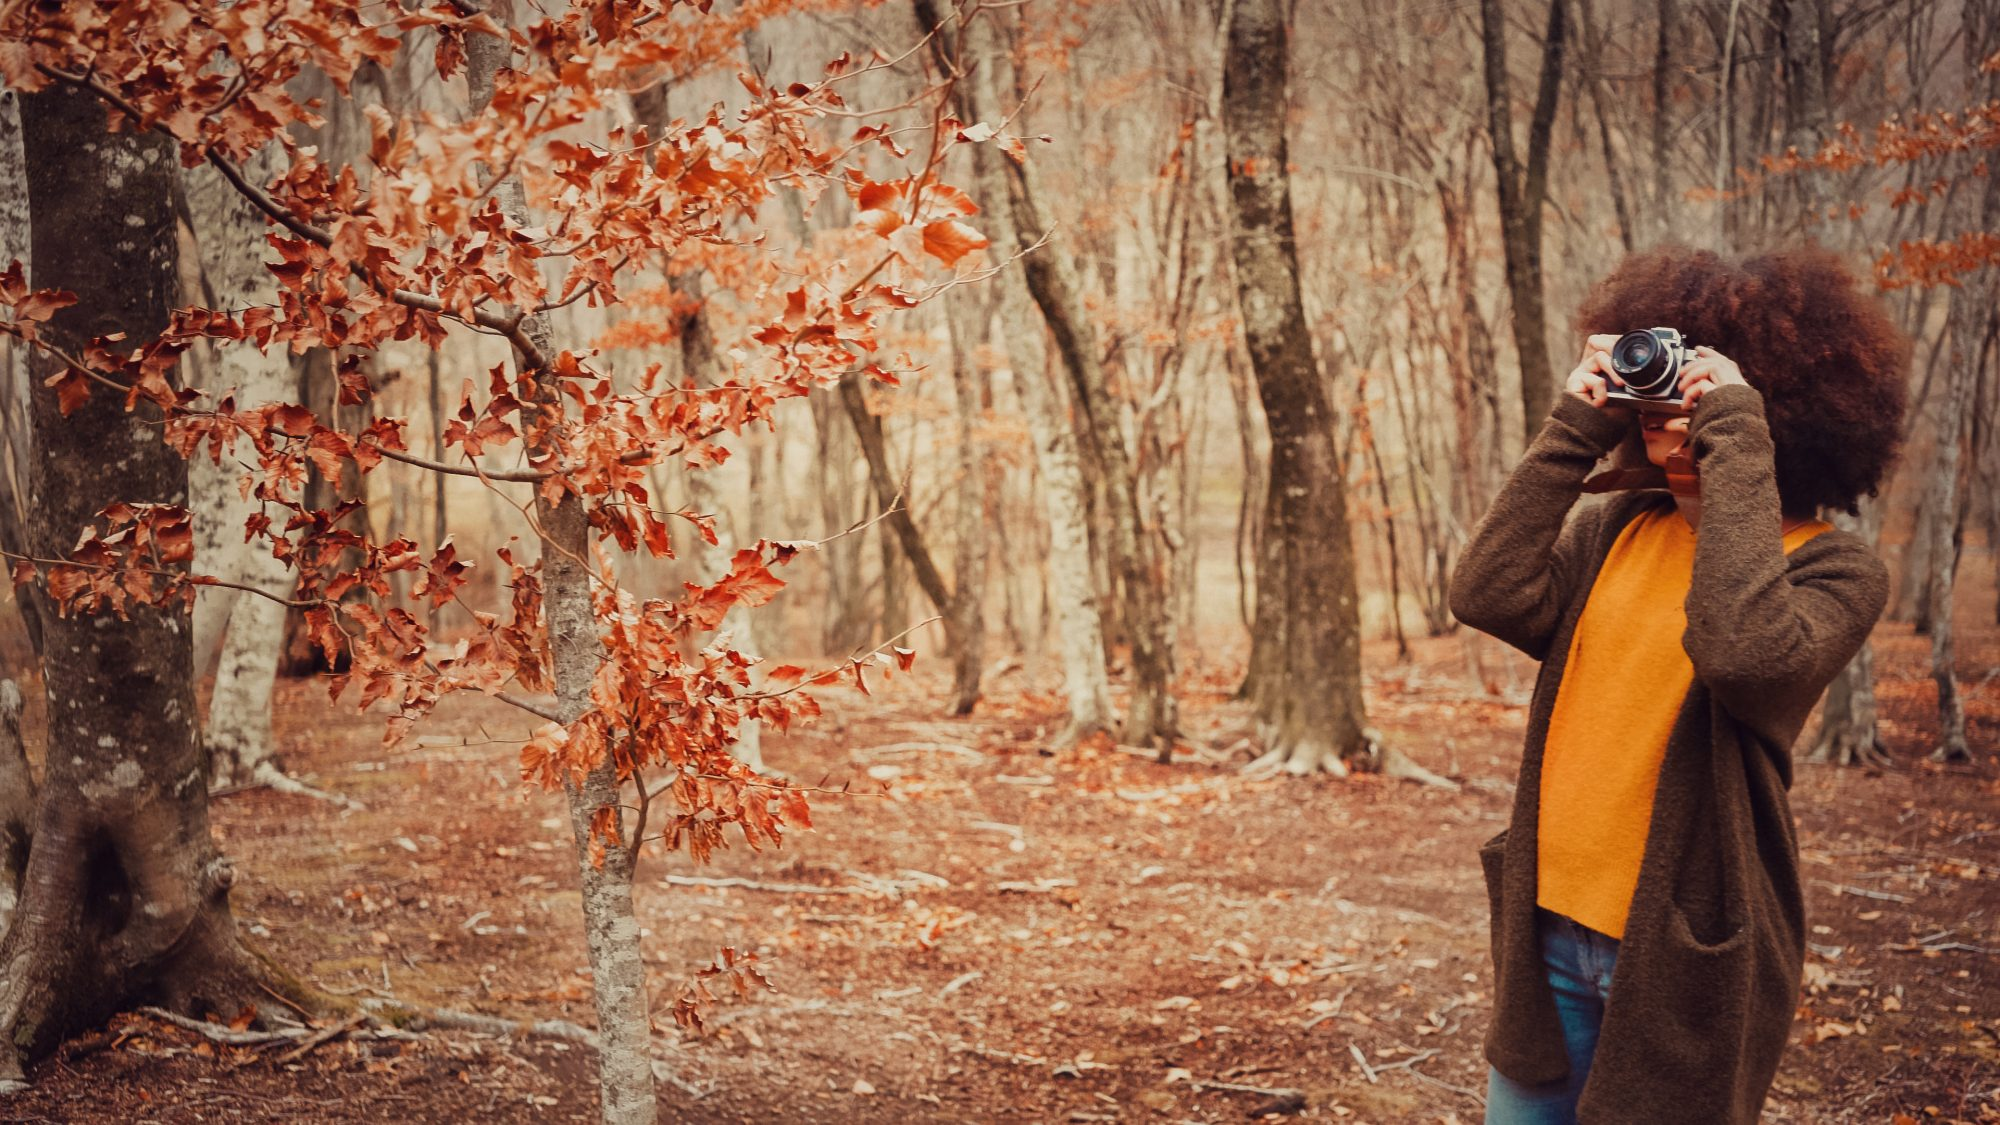 fun-things-to-do-november: woman taking pictures of fall foliage